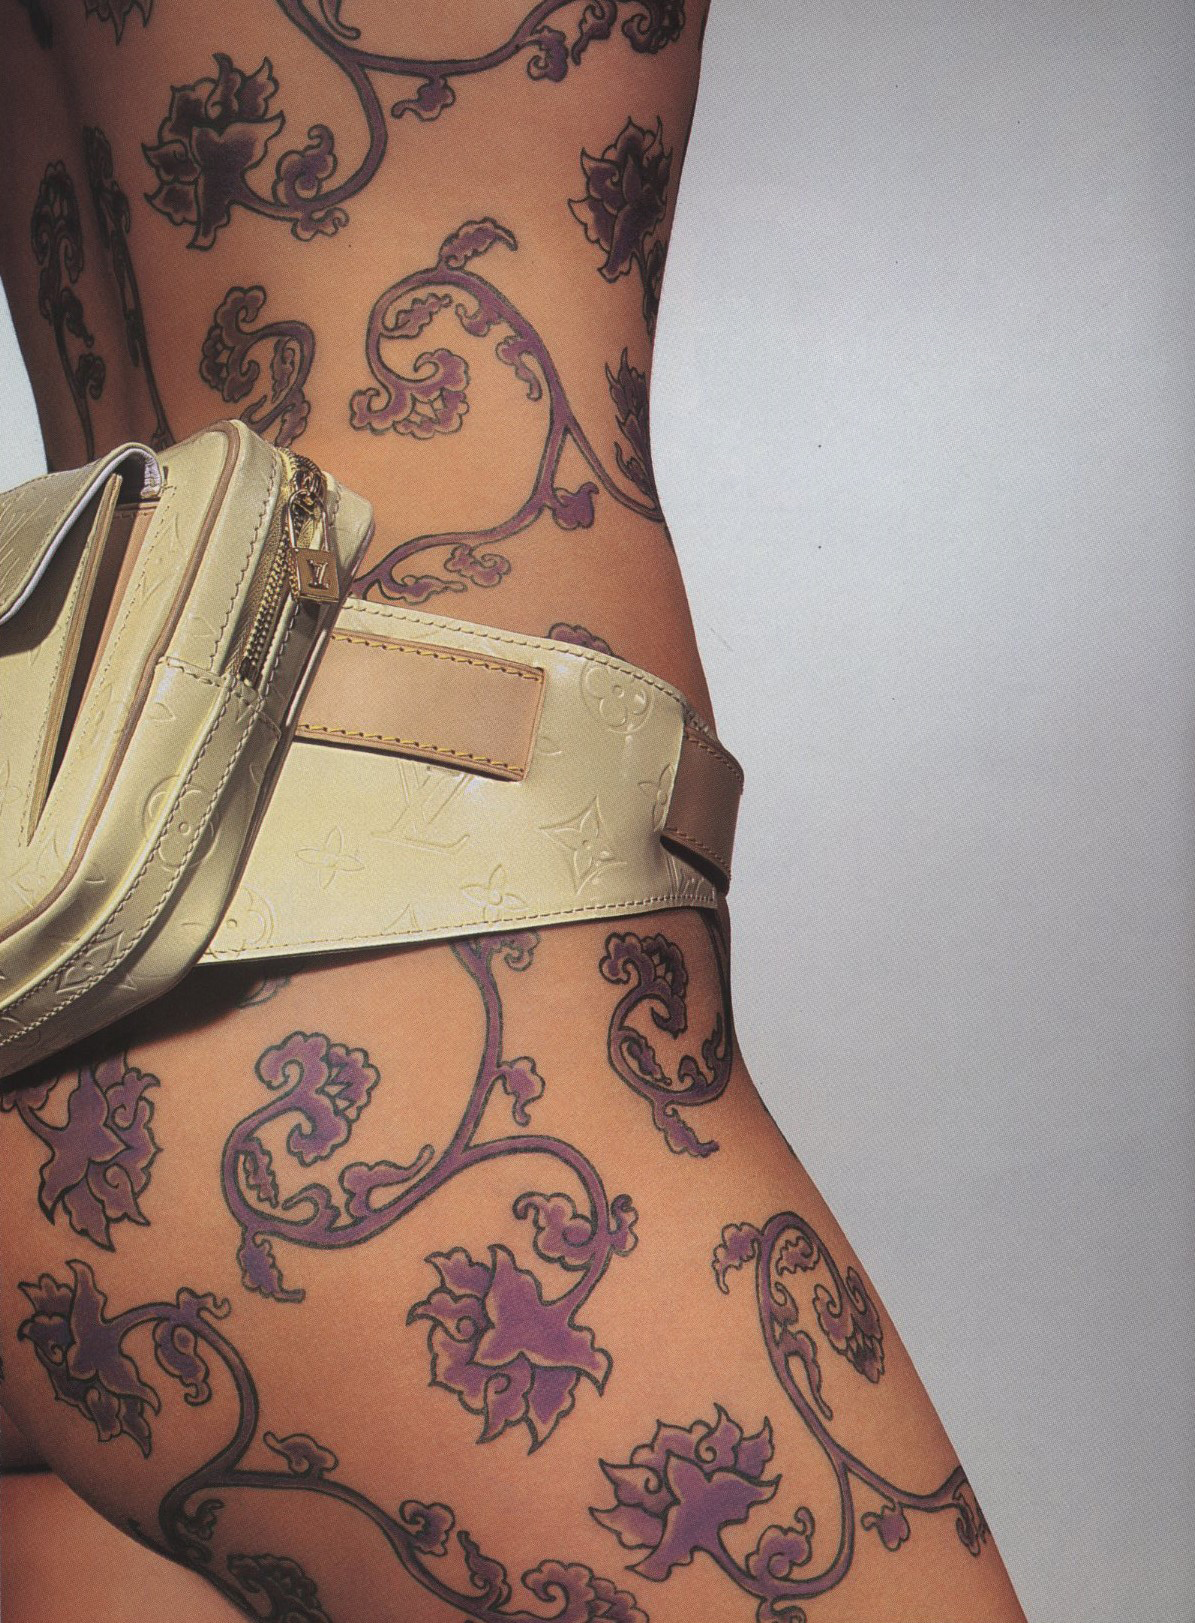 BODY ART | LOUIS VUITTON | PHOTOGRAPHY RICHARD BURBRIDGE | HARPER'S BAZAAR | FEBRUARY 1999